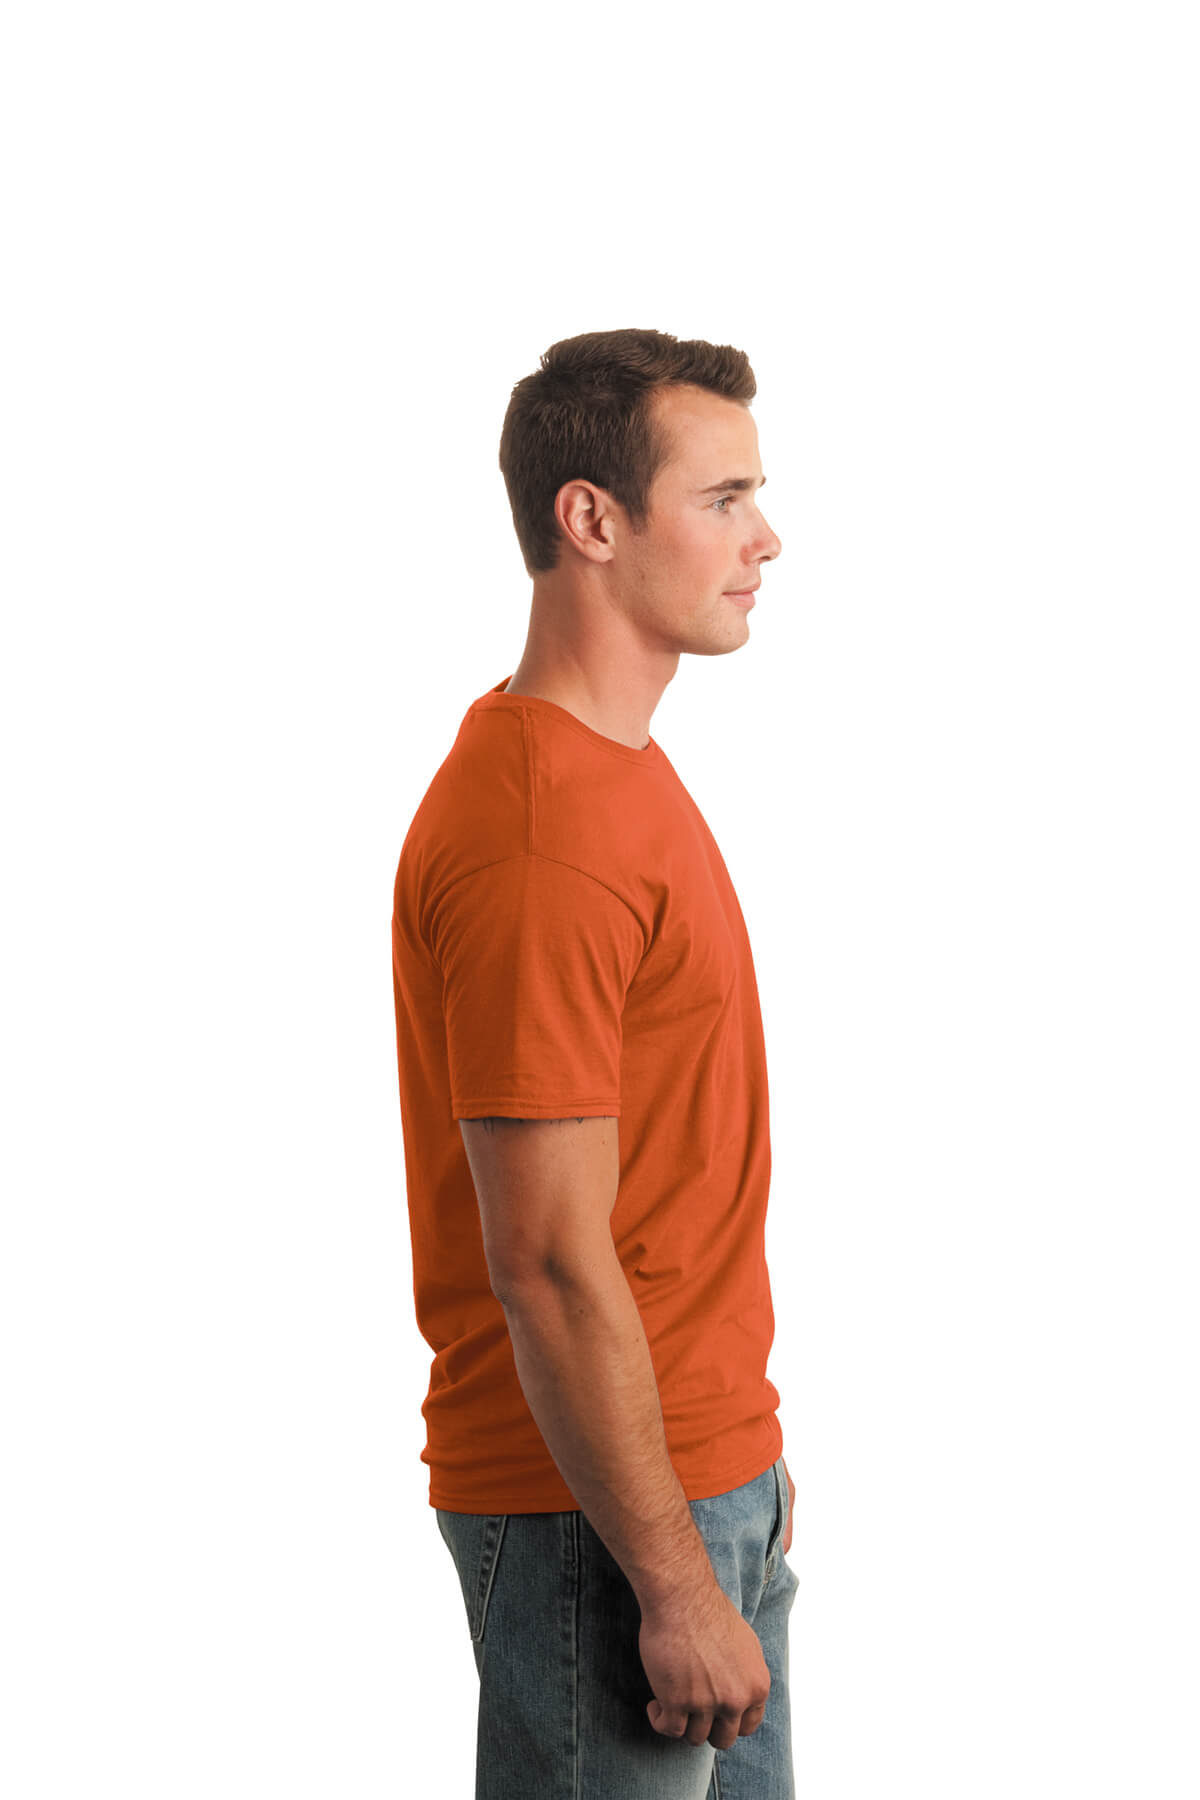 Orange T-Shirt Model Right